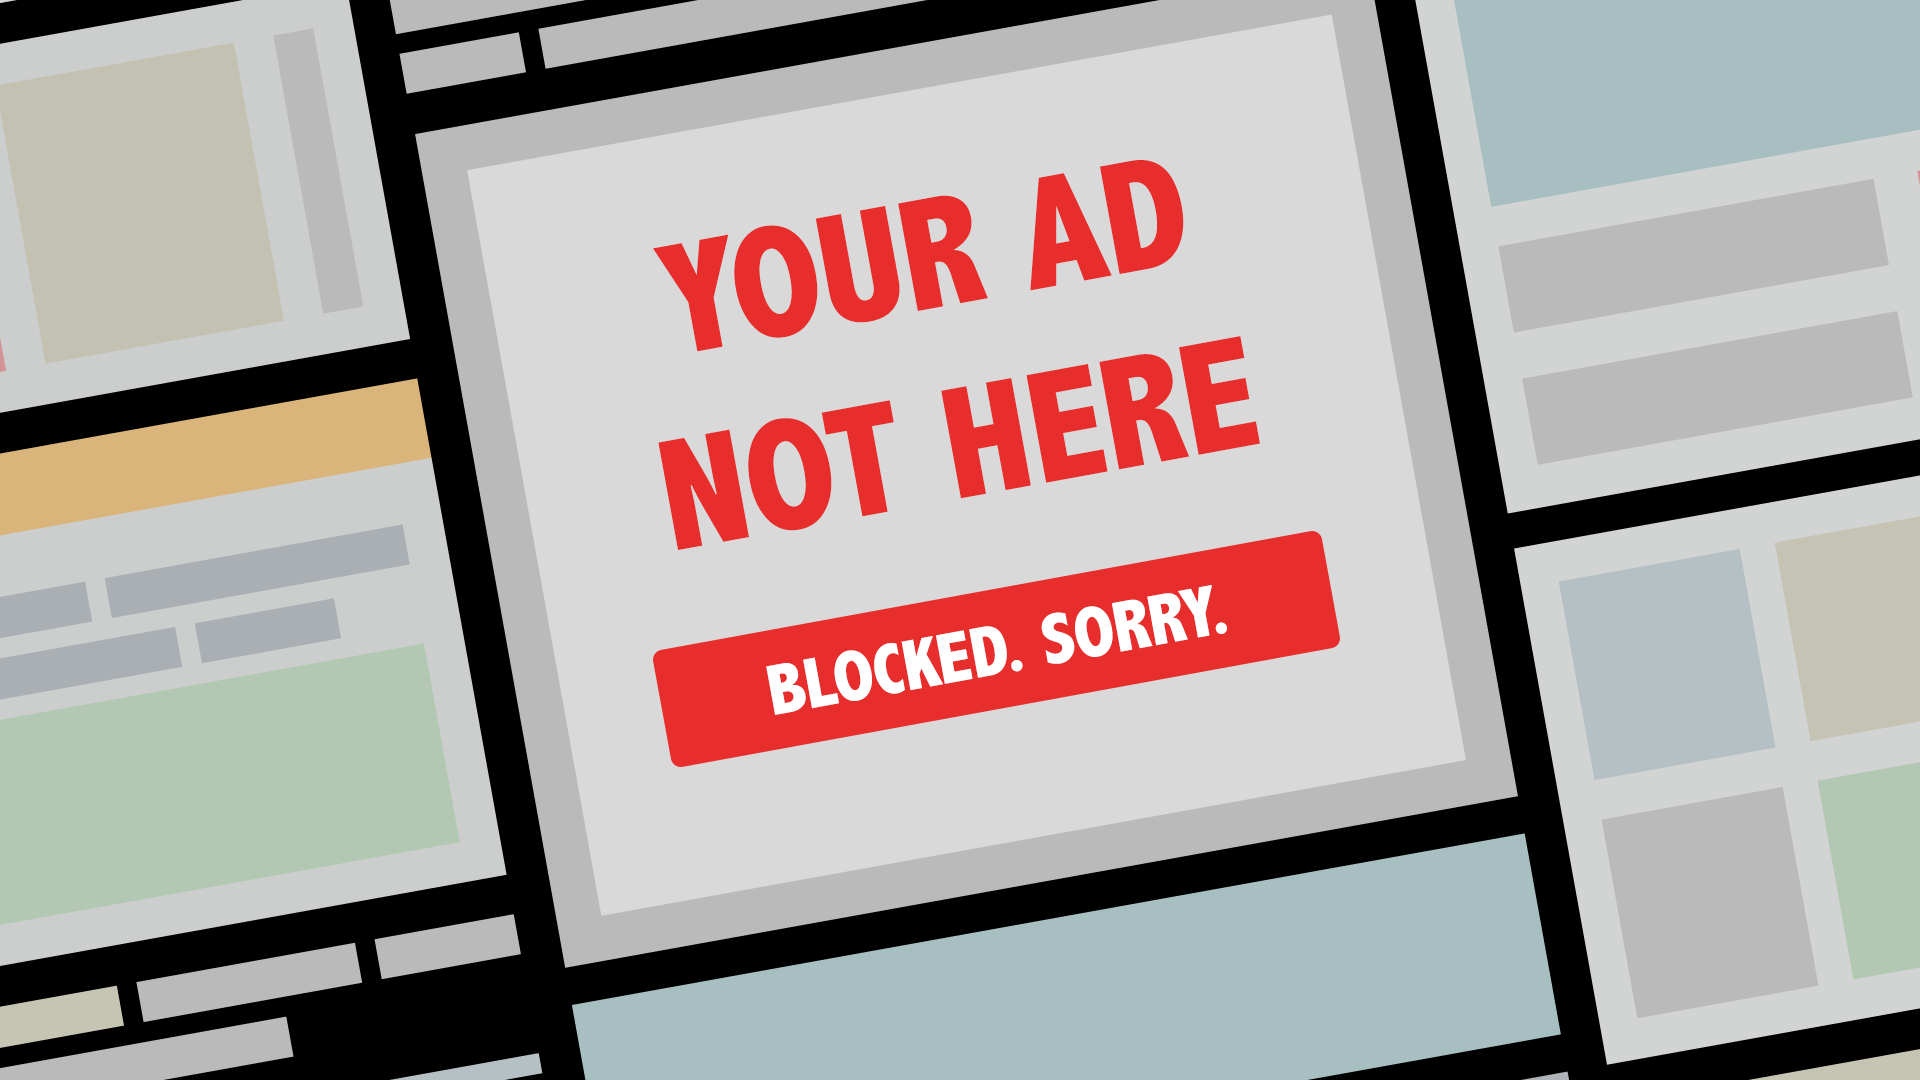 Many websites are silently deploying anti-ad blocking measures